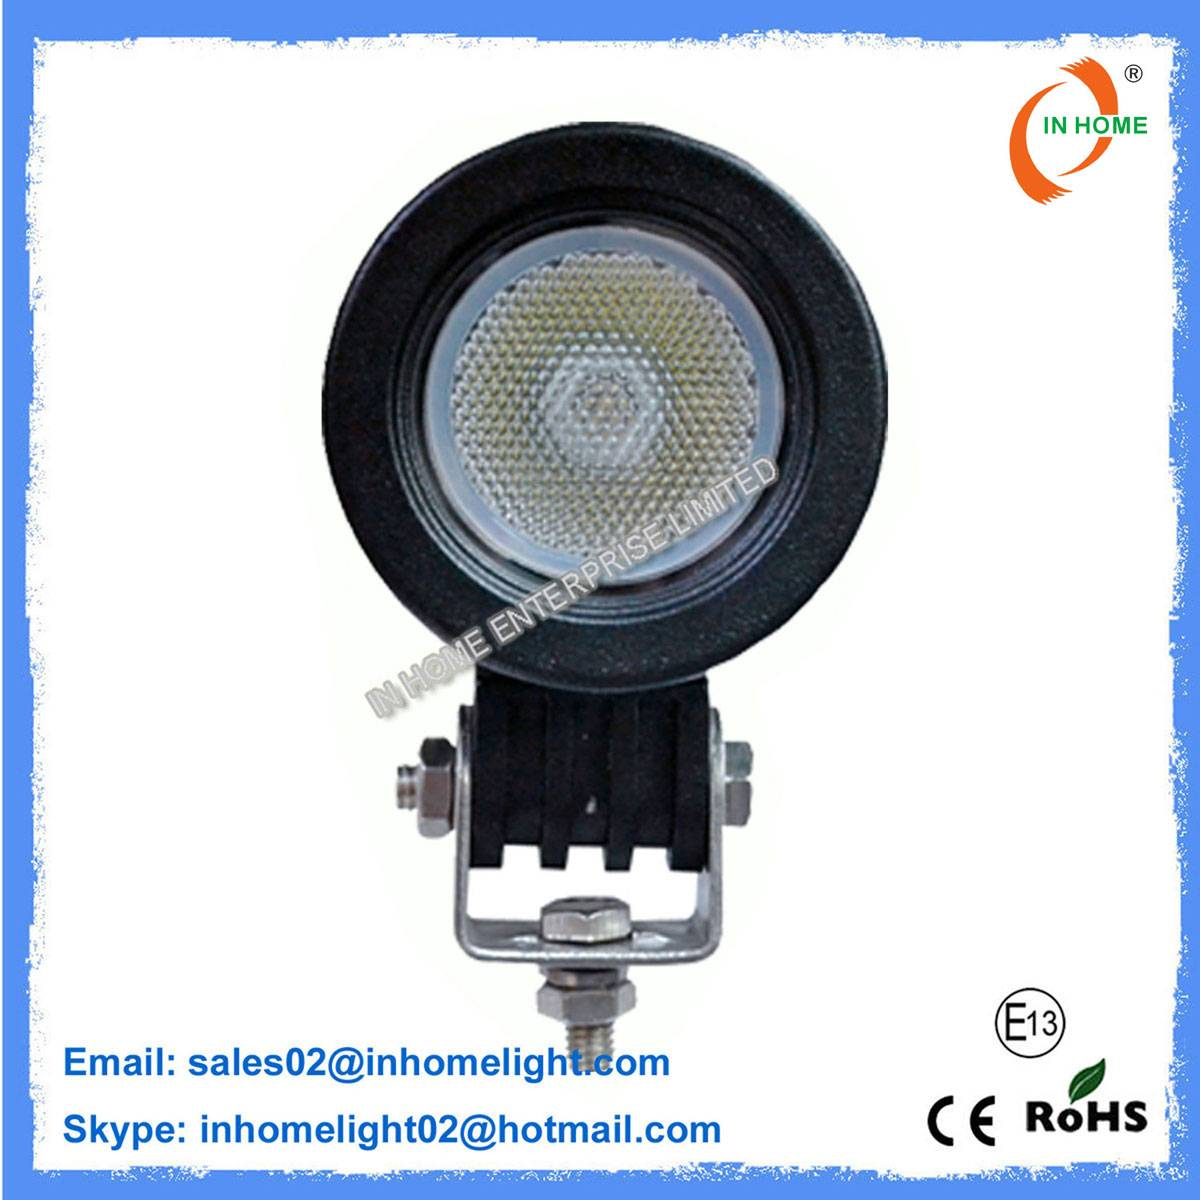 Portable 10W Round LED Work Lamps Energy Saving Heavy Duty Led Work Light